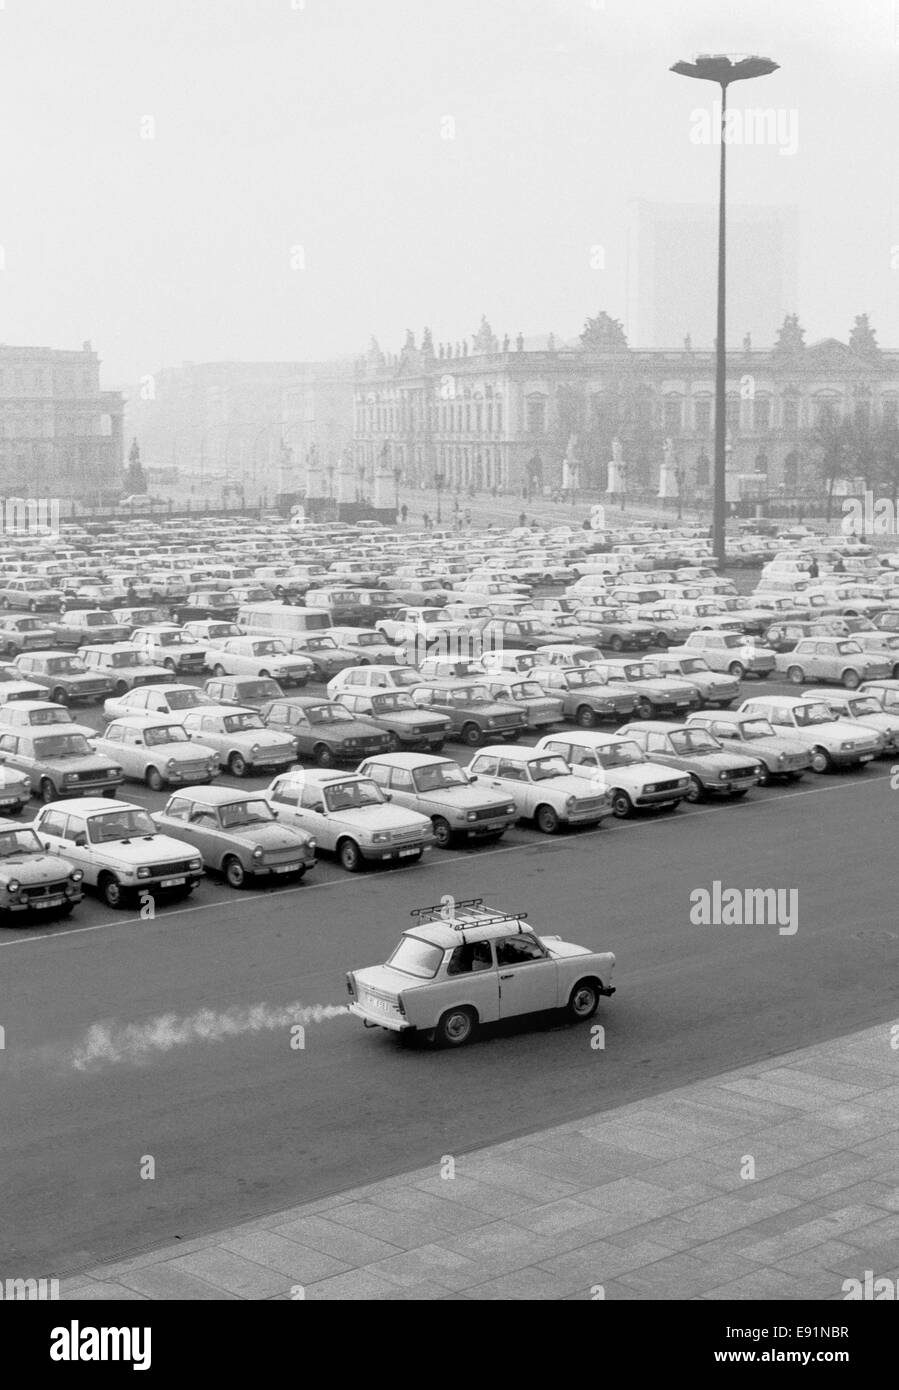 A smoky Trabant car driving along Museum Insel, off Unter den Linden in East Berlin around the time of re-unification - Stock Image